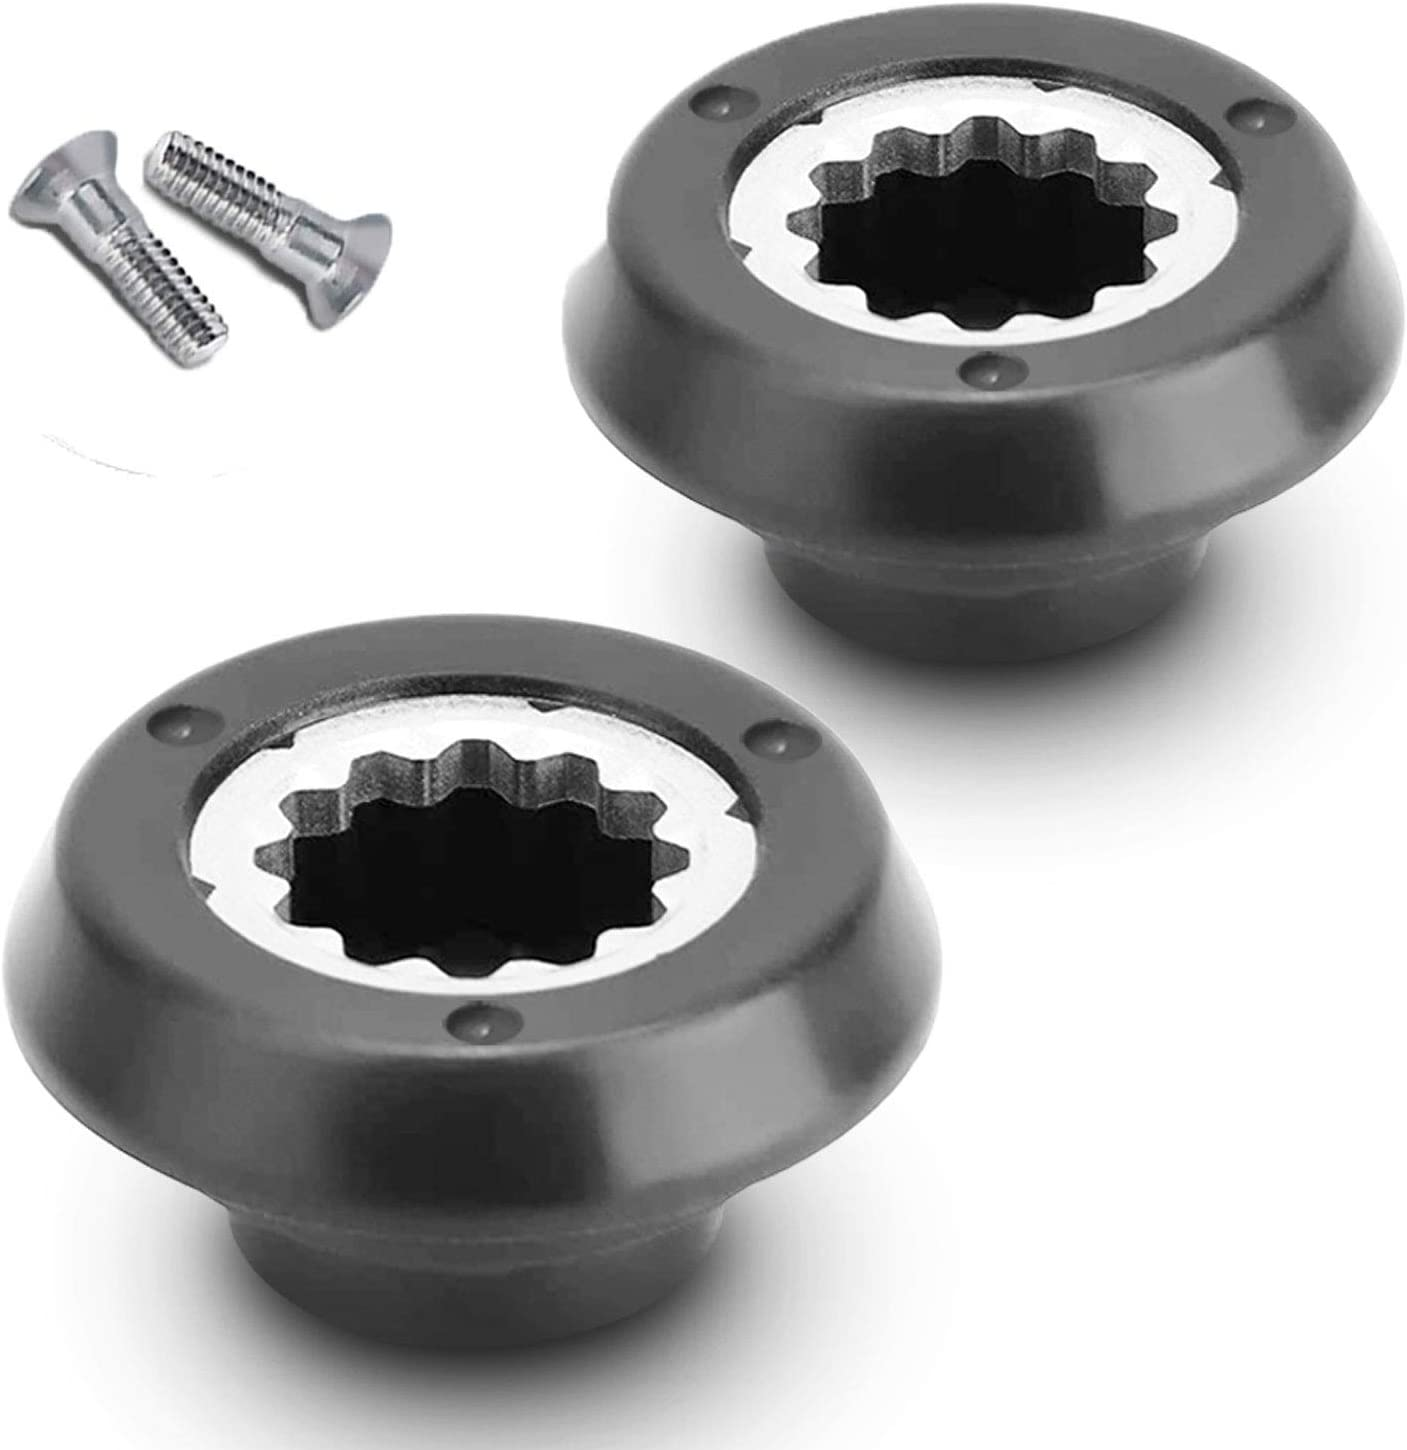 Drive Socket Kits, Replacement Blender Drive Socket Compatible with Nutri-Bulet RX 1700W, Base Gear Replacement Accessories Metal & Plastic (2 Pack)